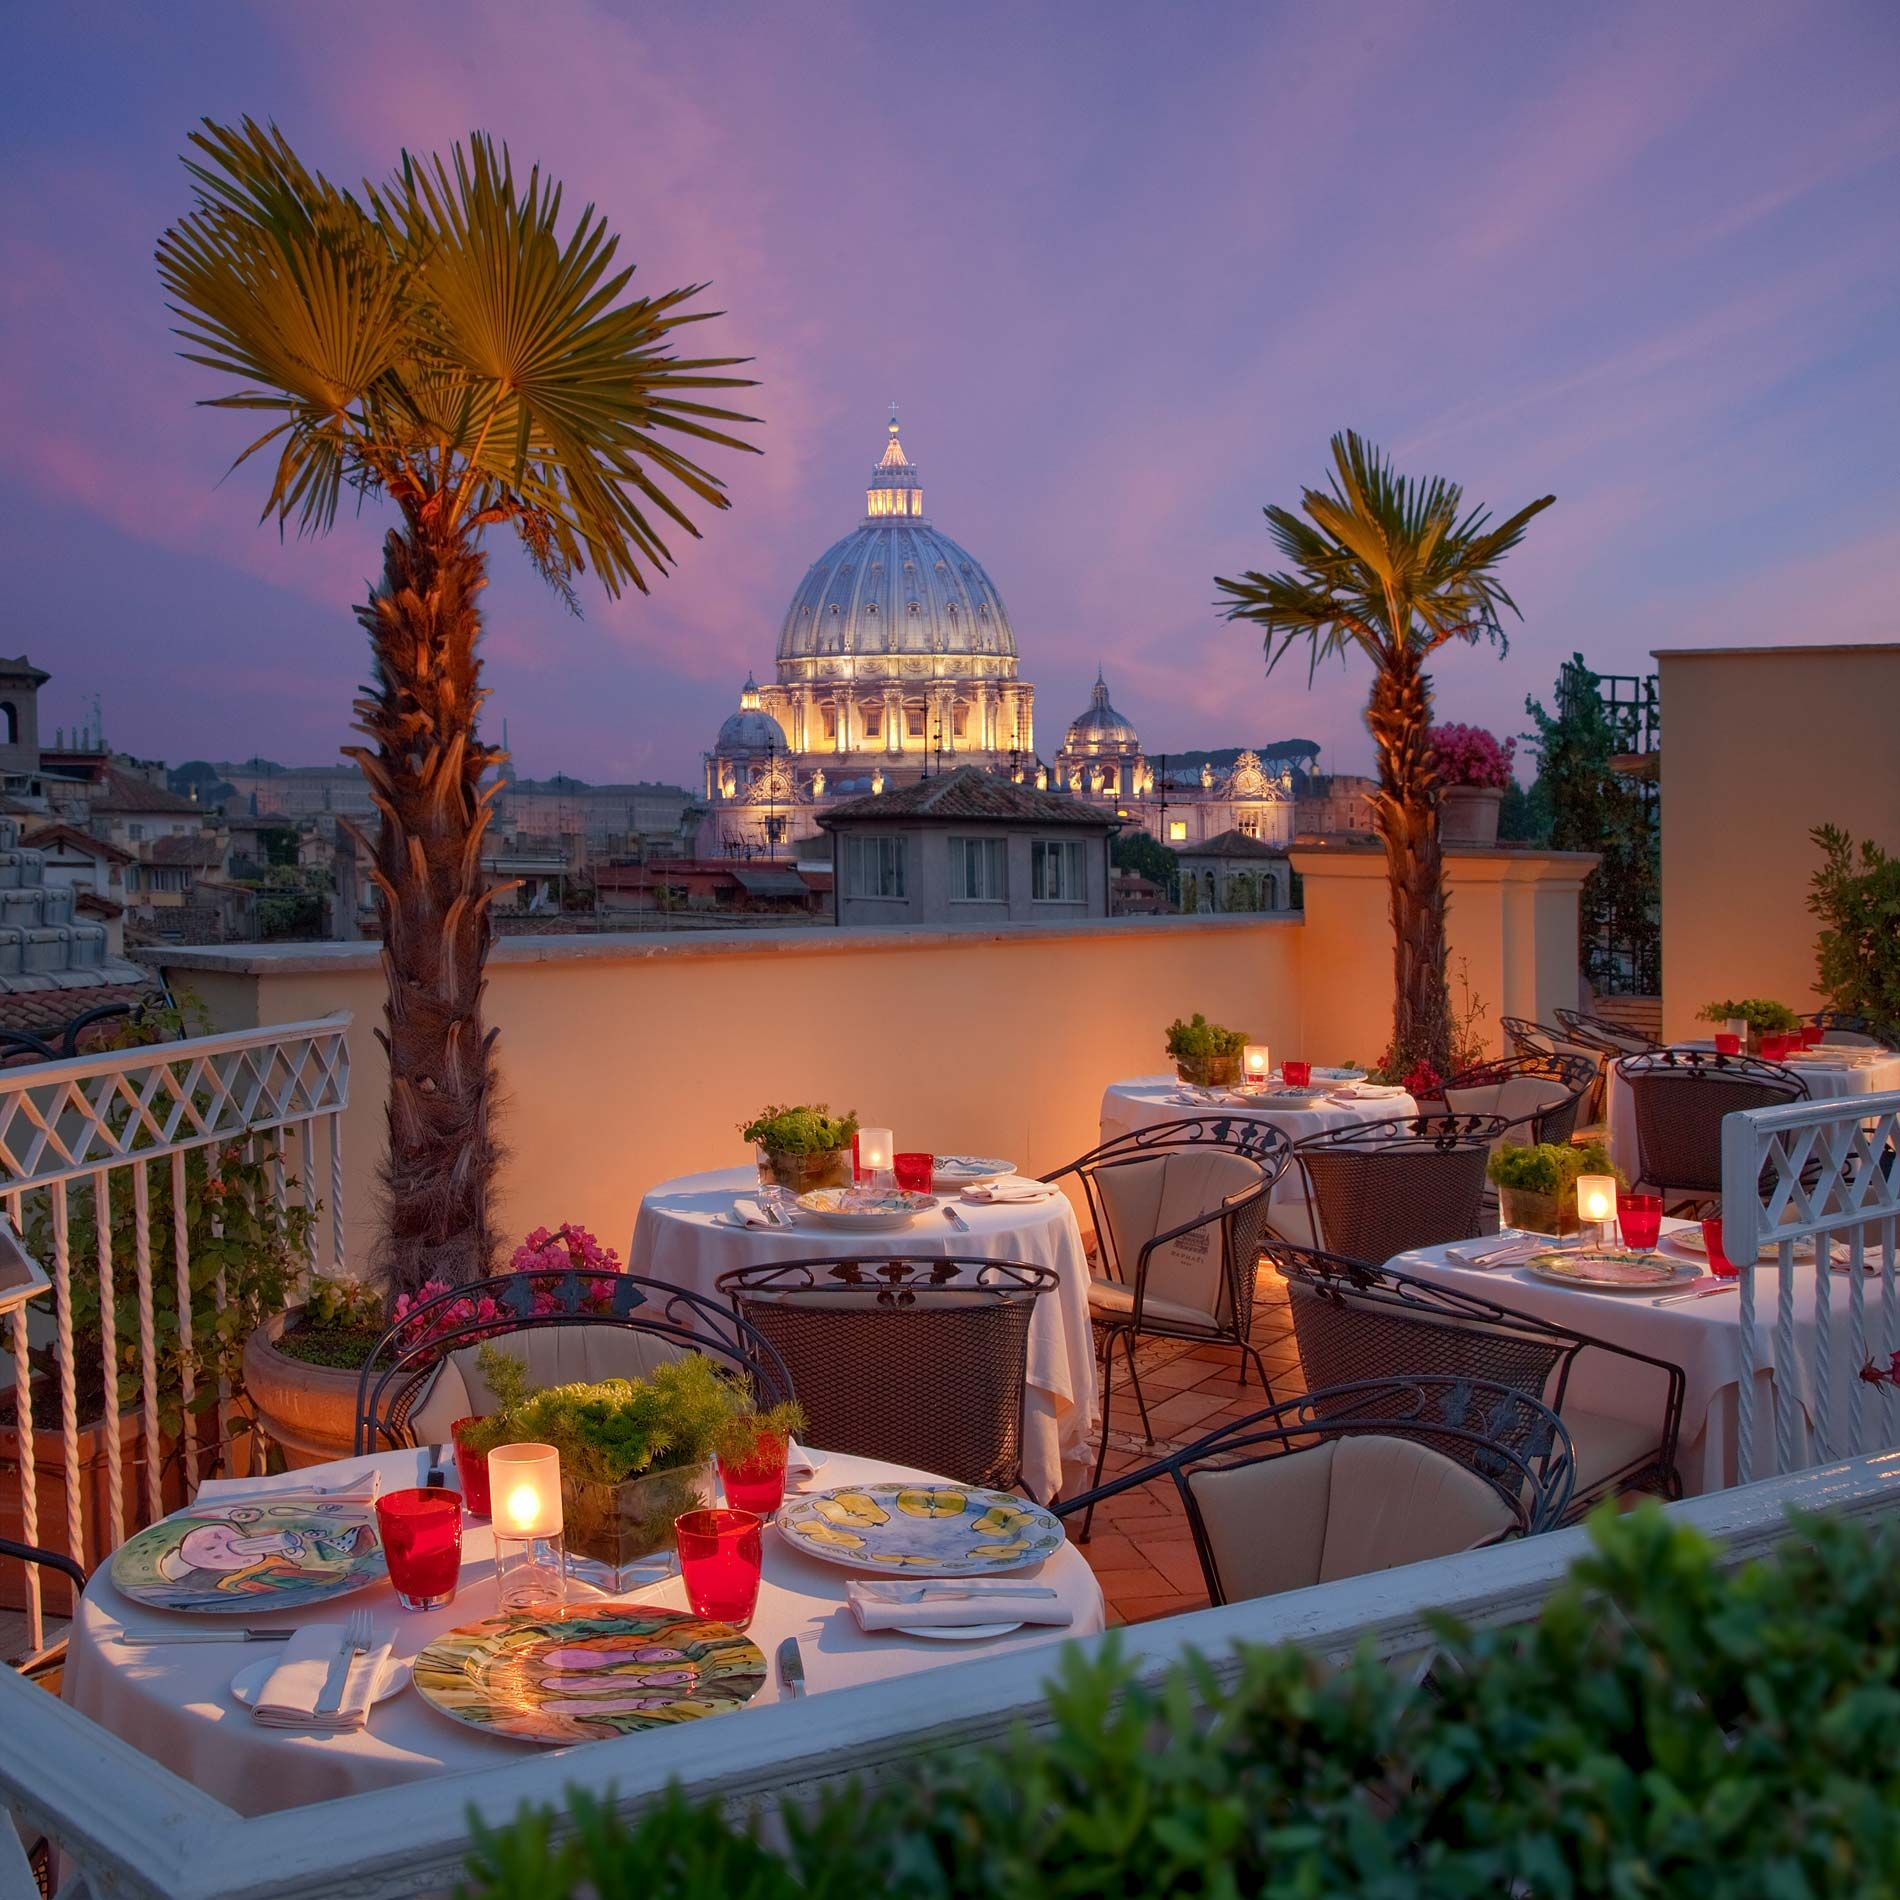 Roof Garden Near The Vatican To Enjoy Fresh Cakes And Pastries For Your Daily Breakfast Hotel Waldorf Rome Club House House Hotel